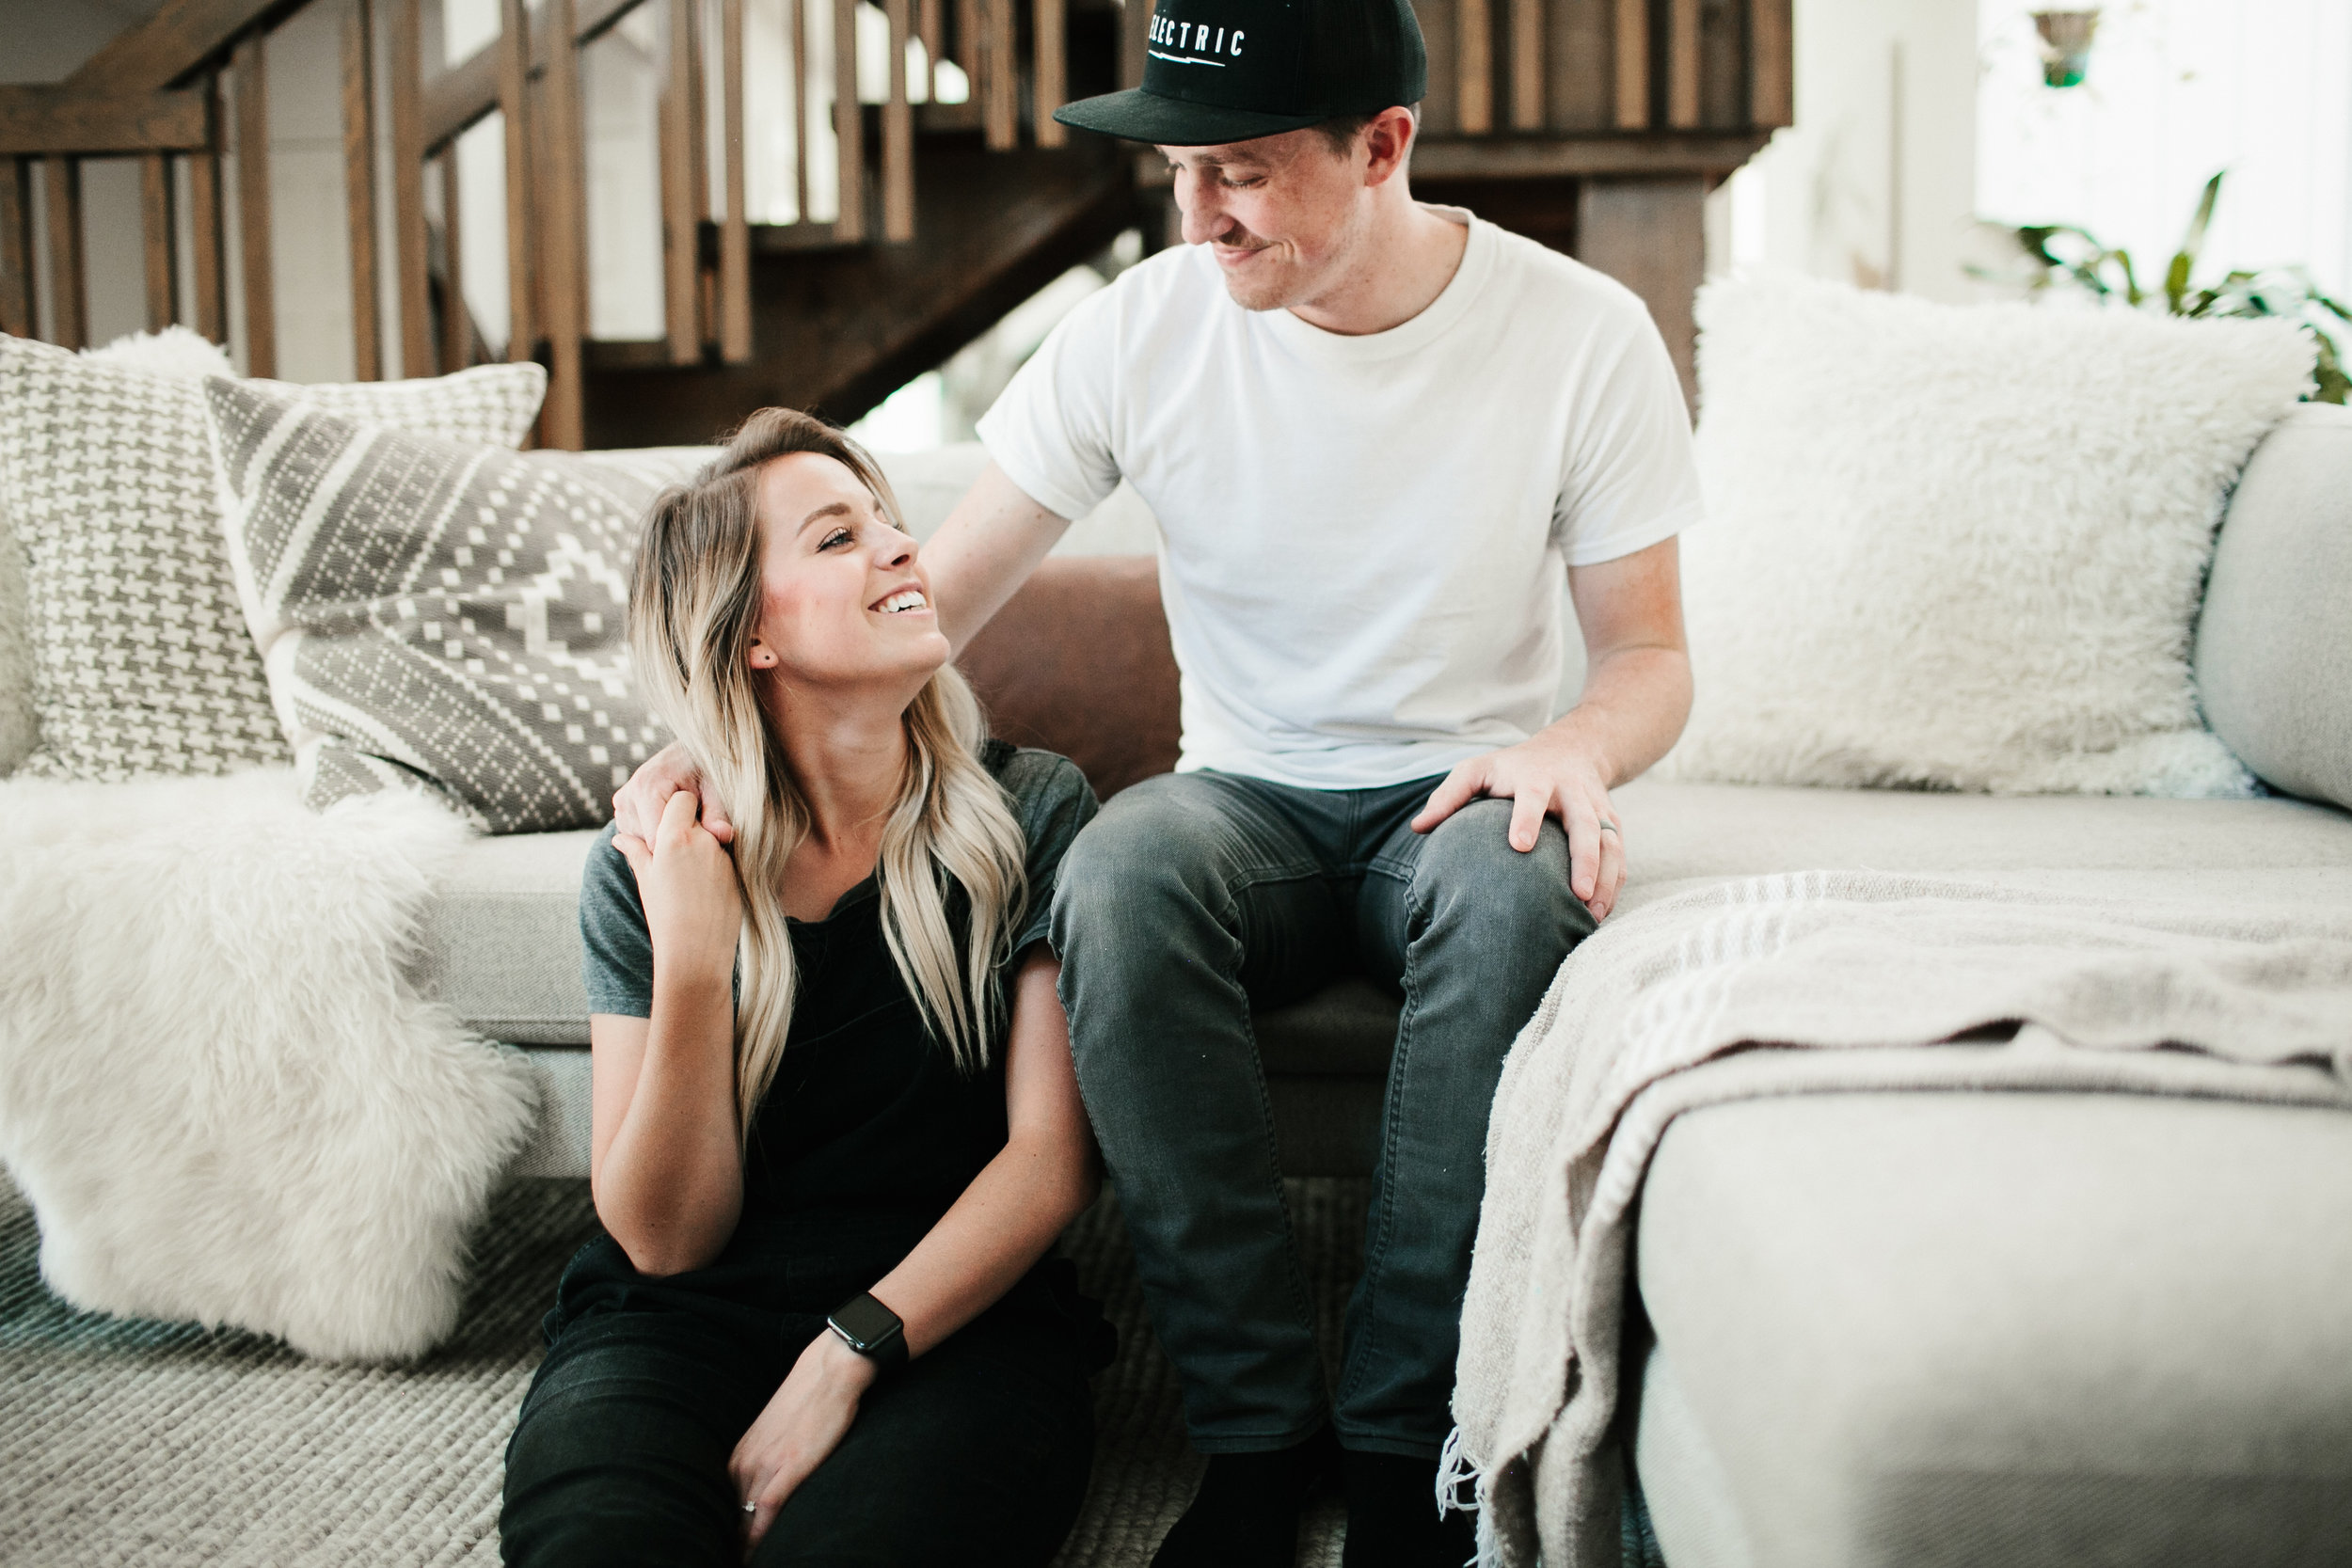 Jacob + Ashley | Ellie Be